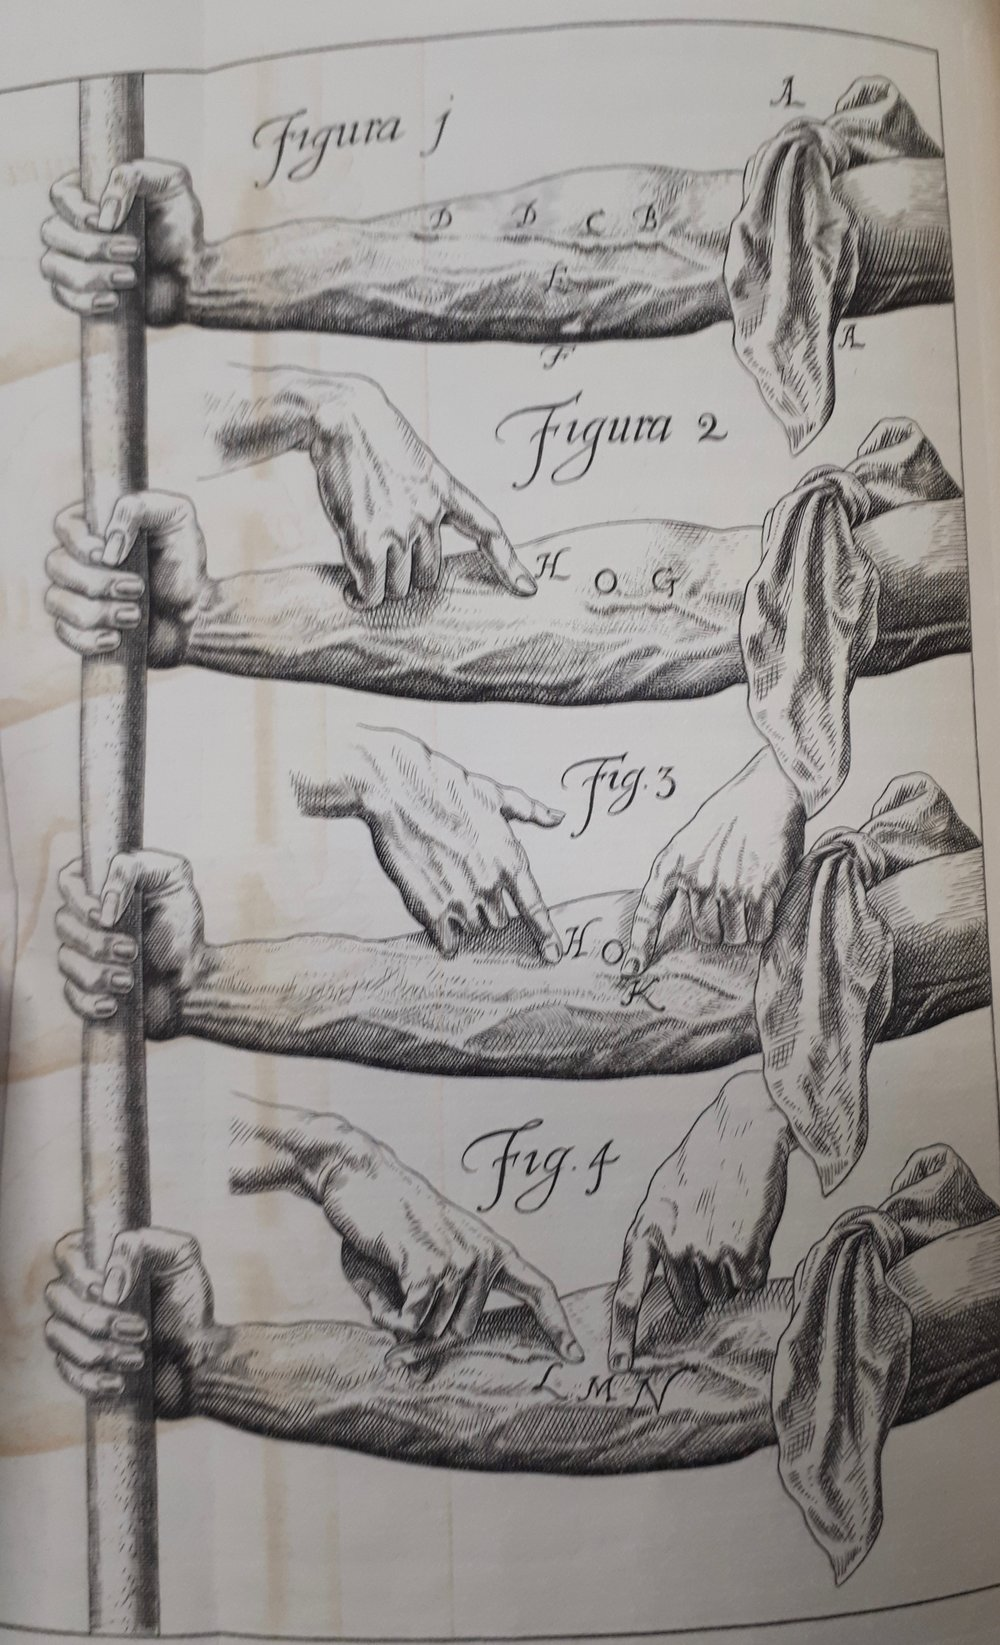 Harvey,  Exertatio Anatomica , pp. 56-7 from the Robinson Library edition.